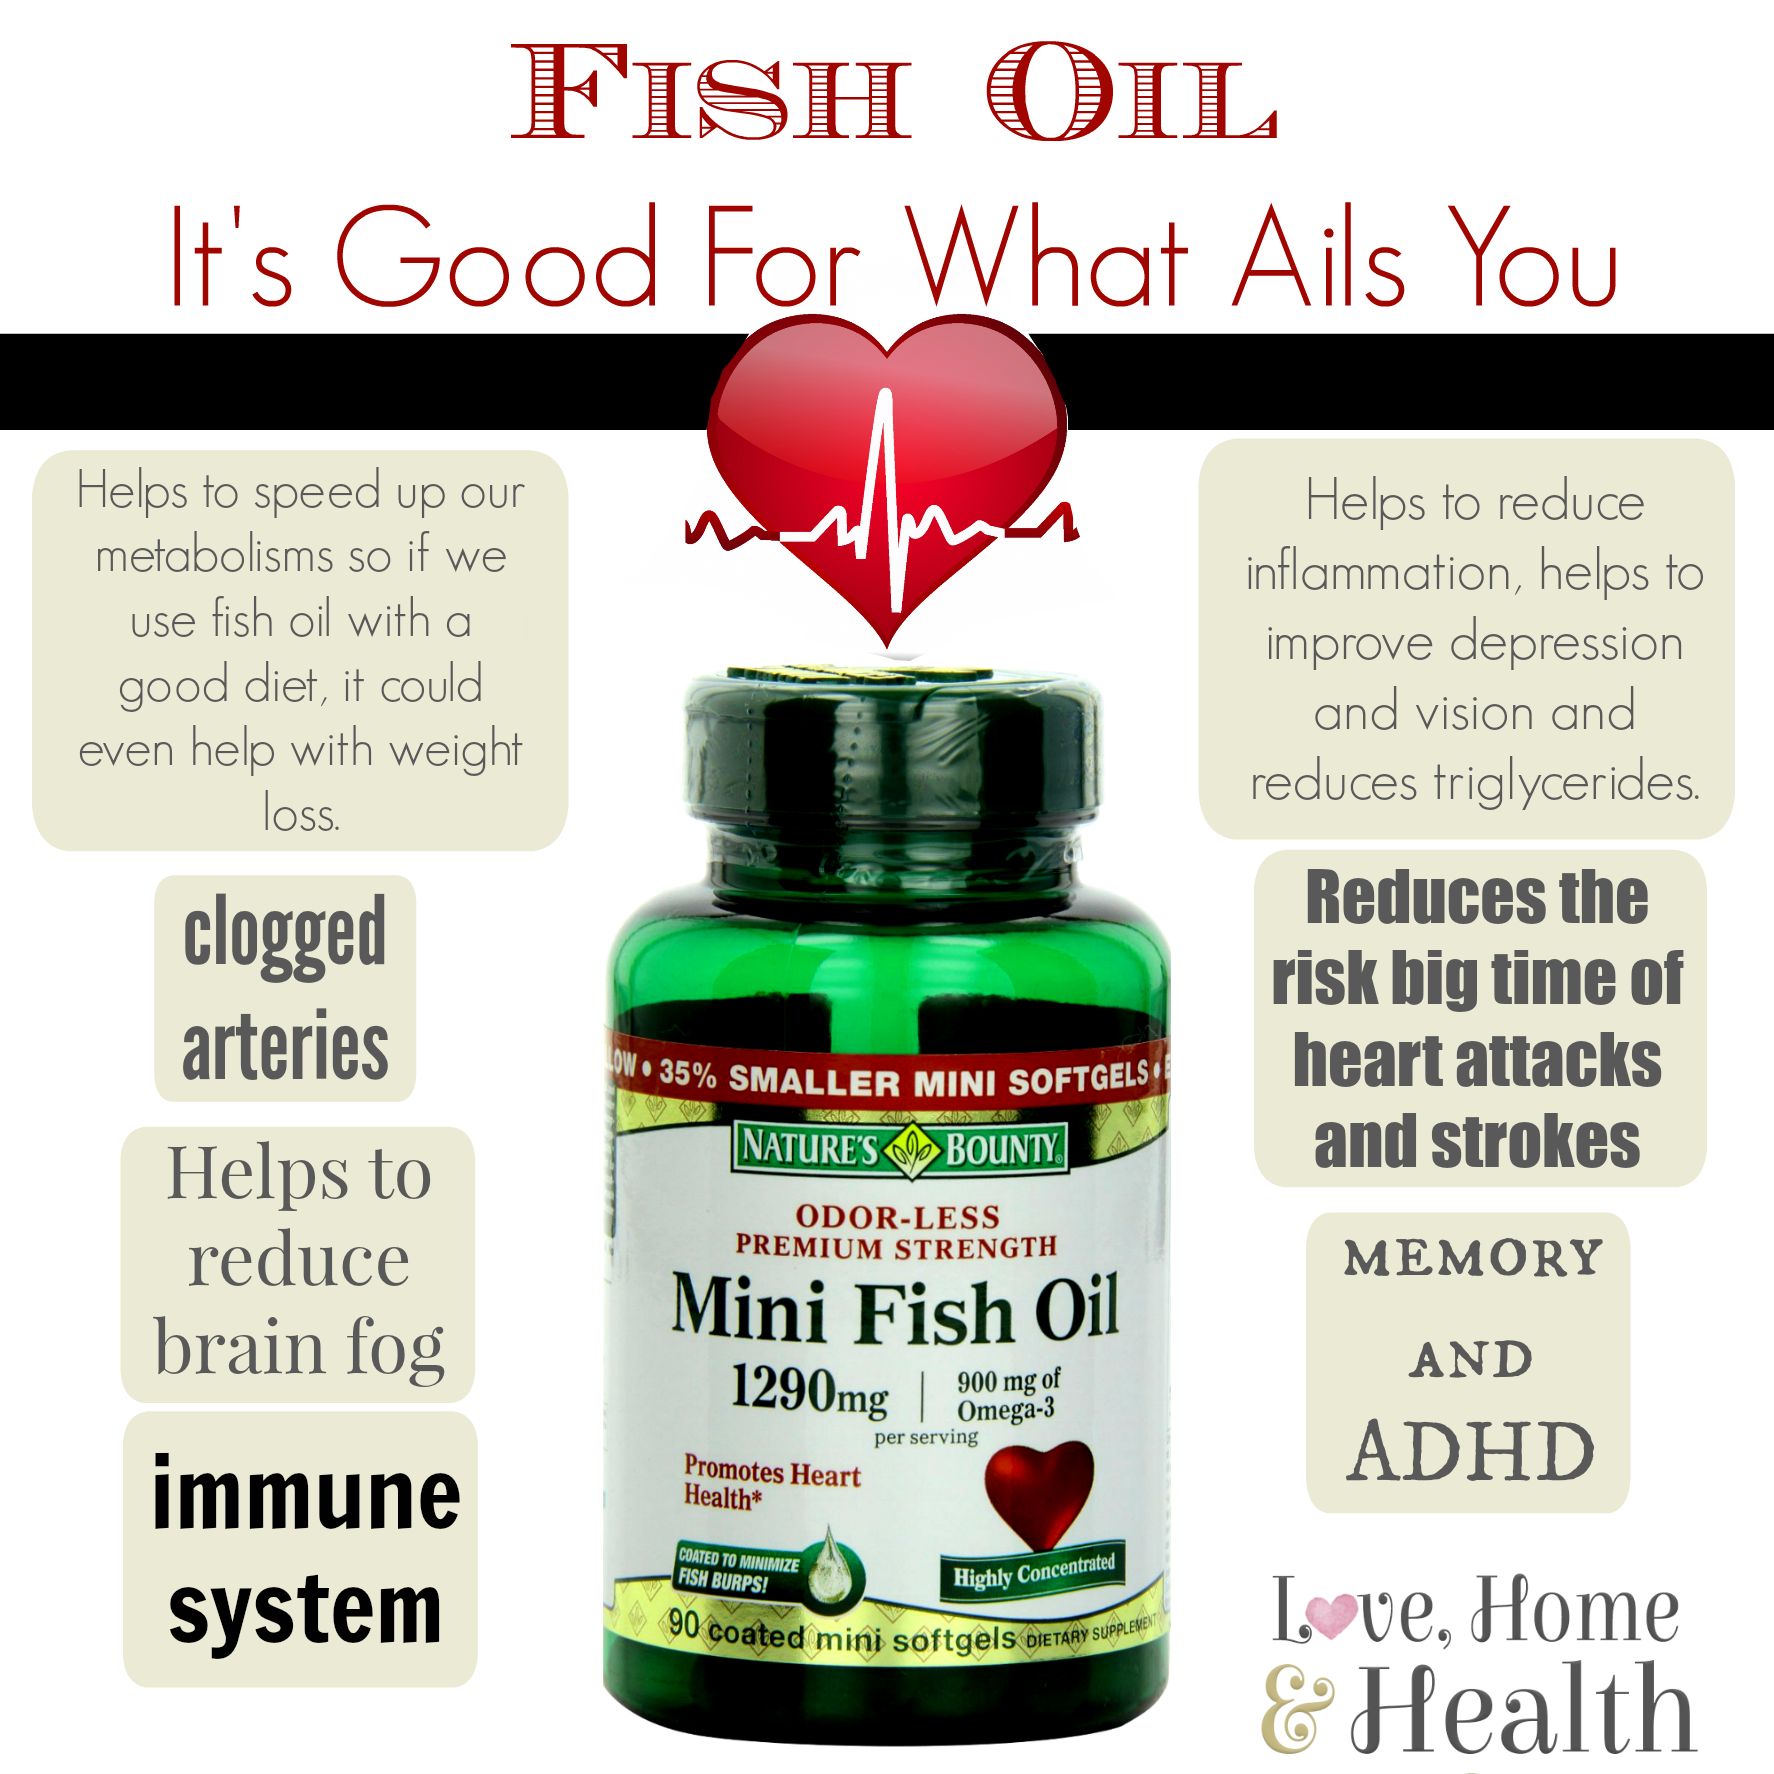 fish oil good for what ails you